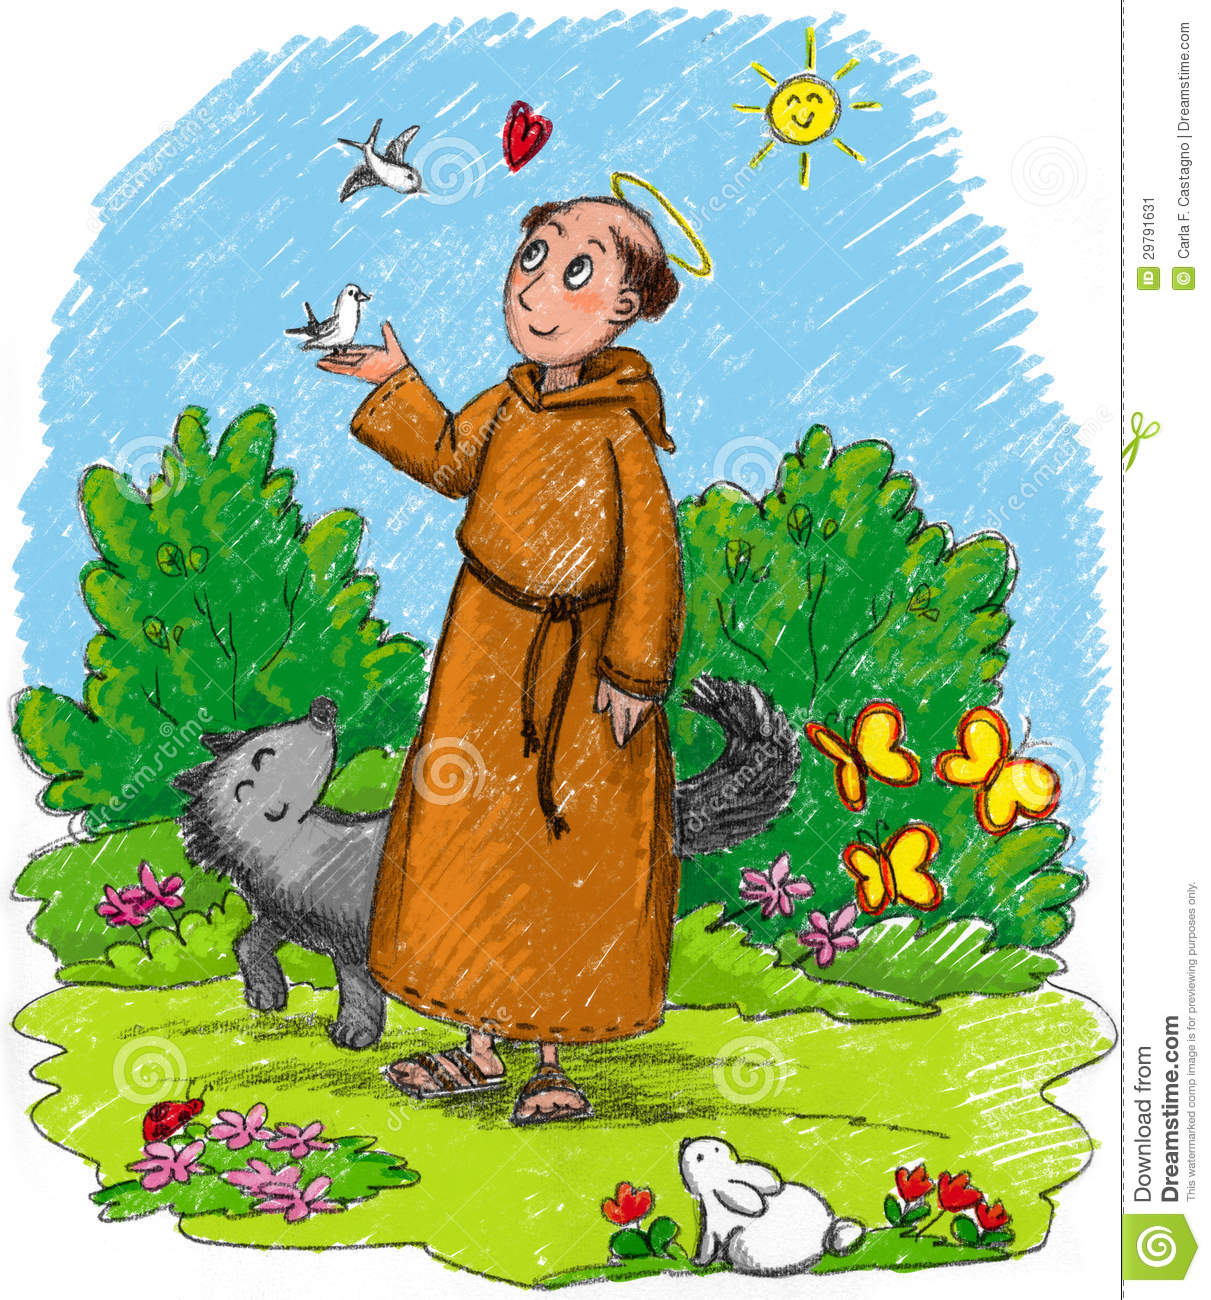 St francis of assisi clipart.